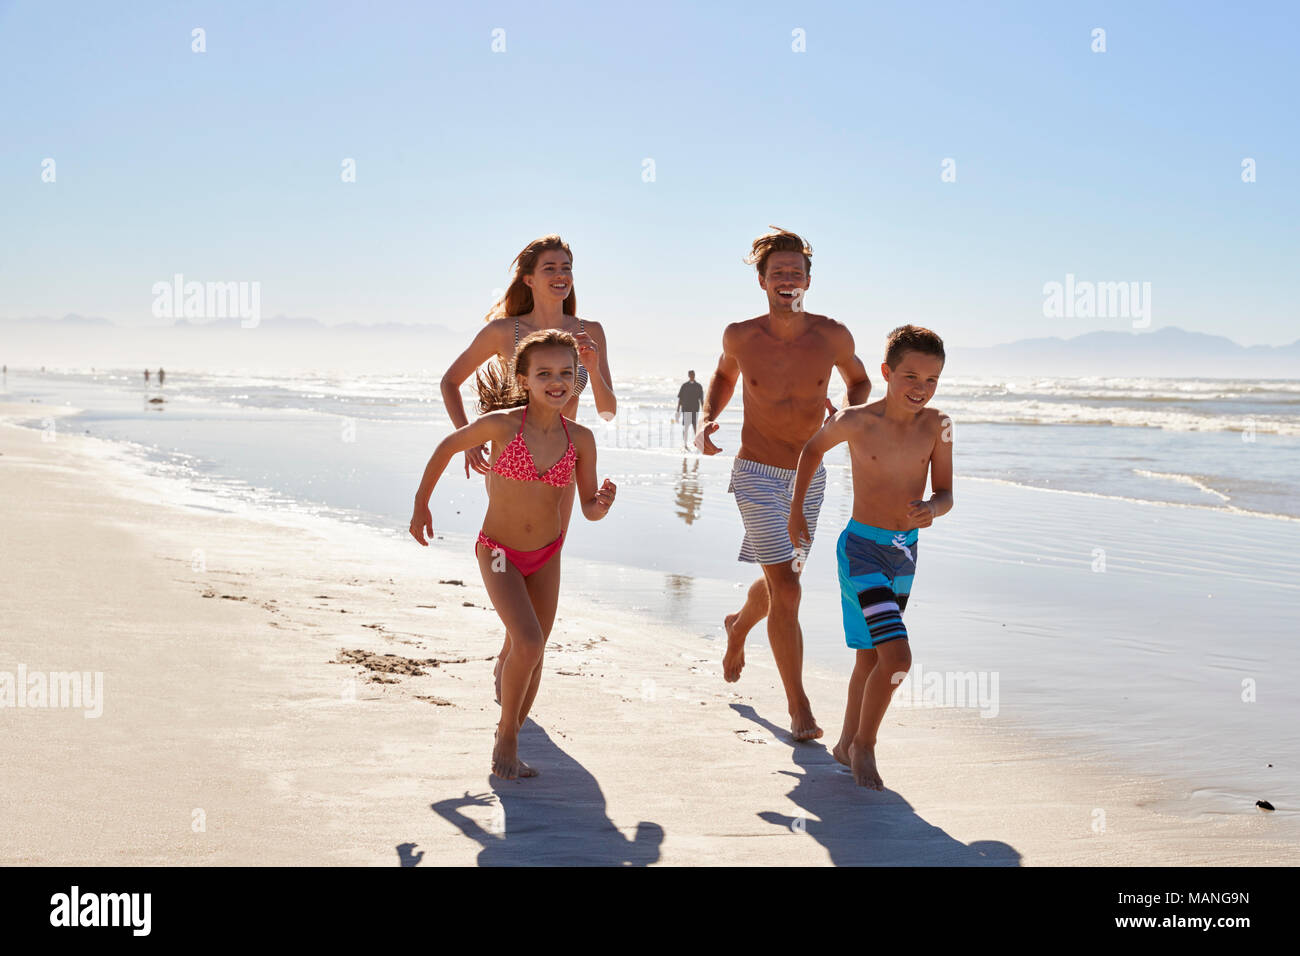 Family On Summer Vacation Running Along Beach Together - Stock Image